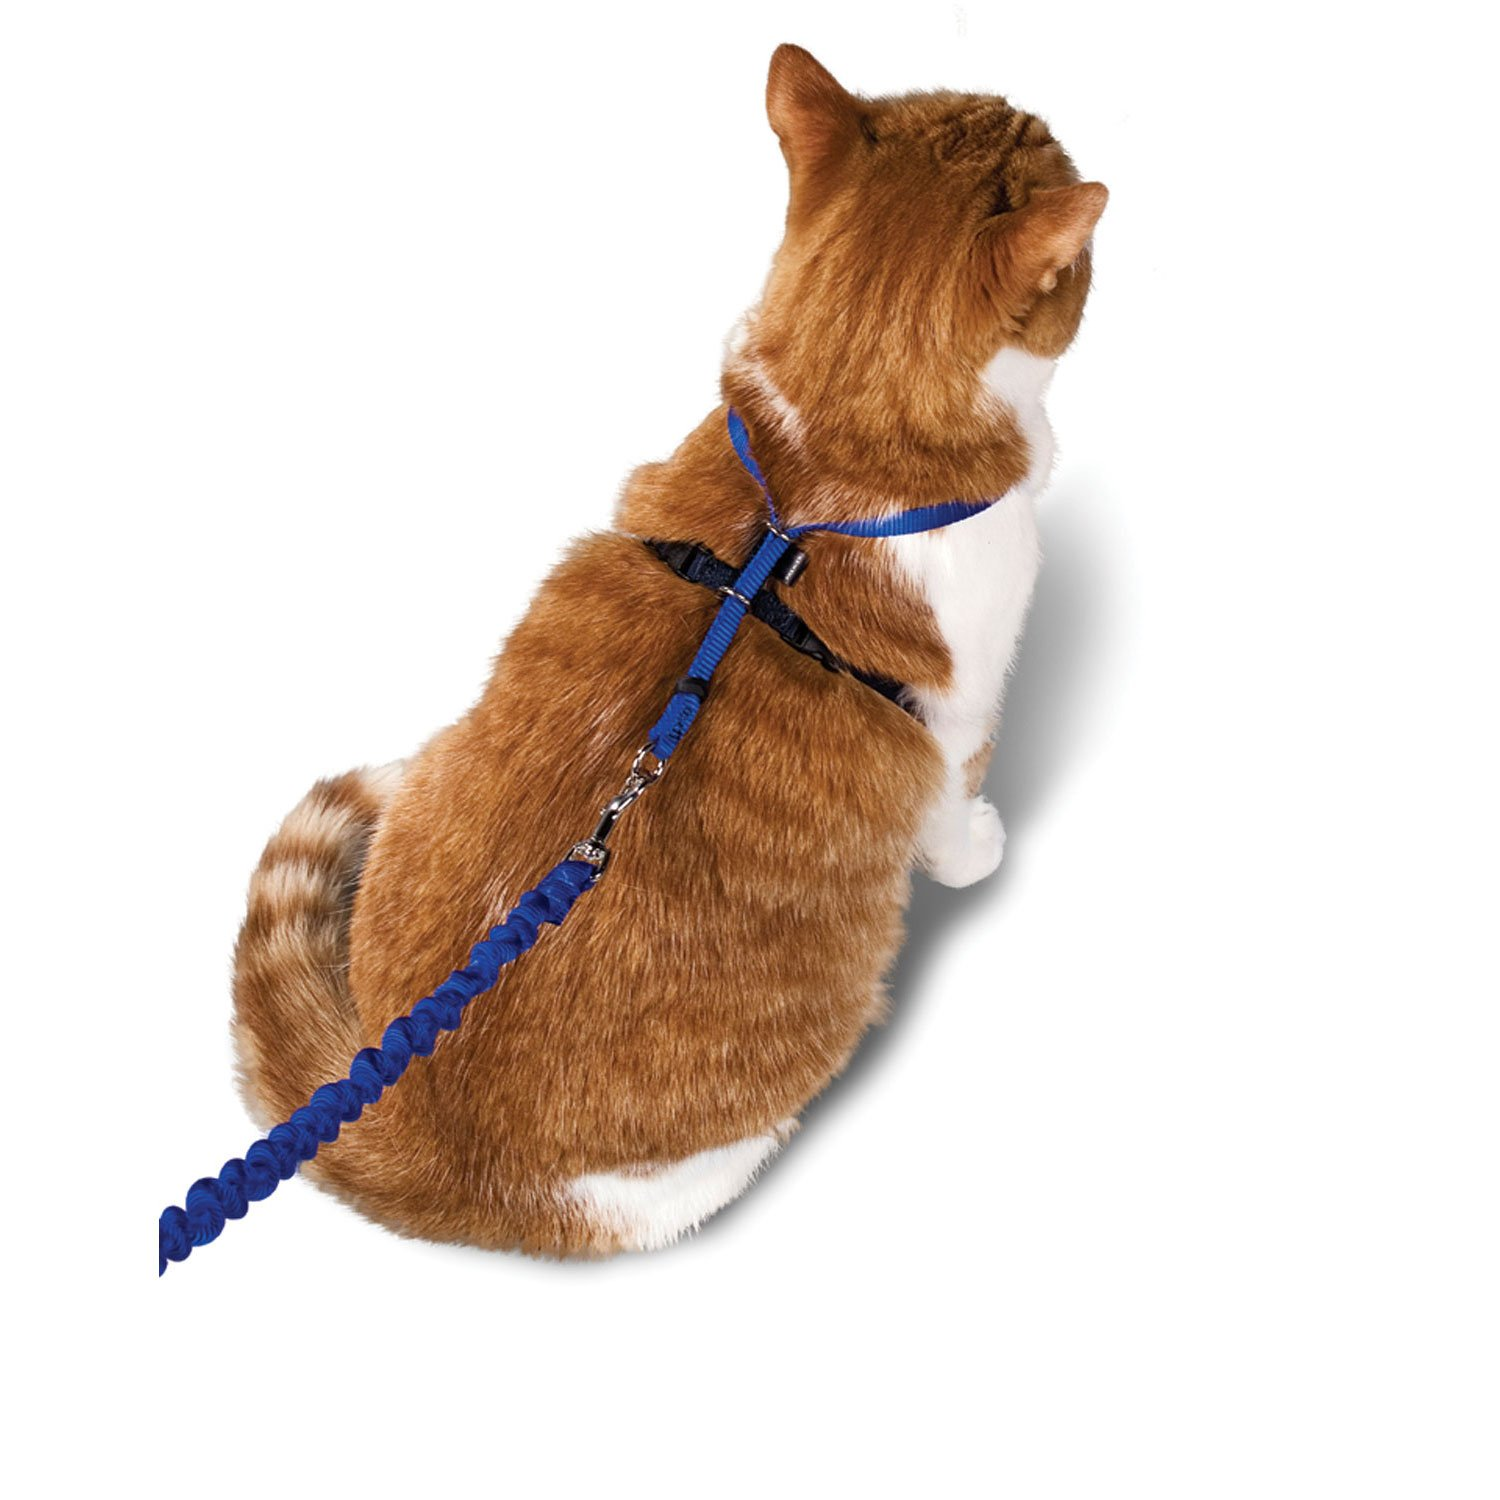 Image of PetSafe Gentle Leader Come with Me Kitty Harness & Bungee Leash, Small, Blue